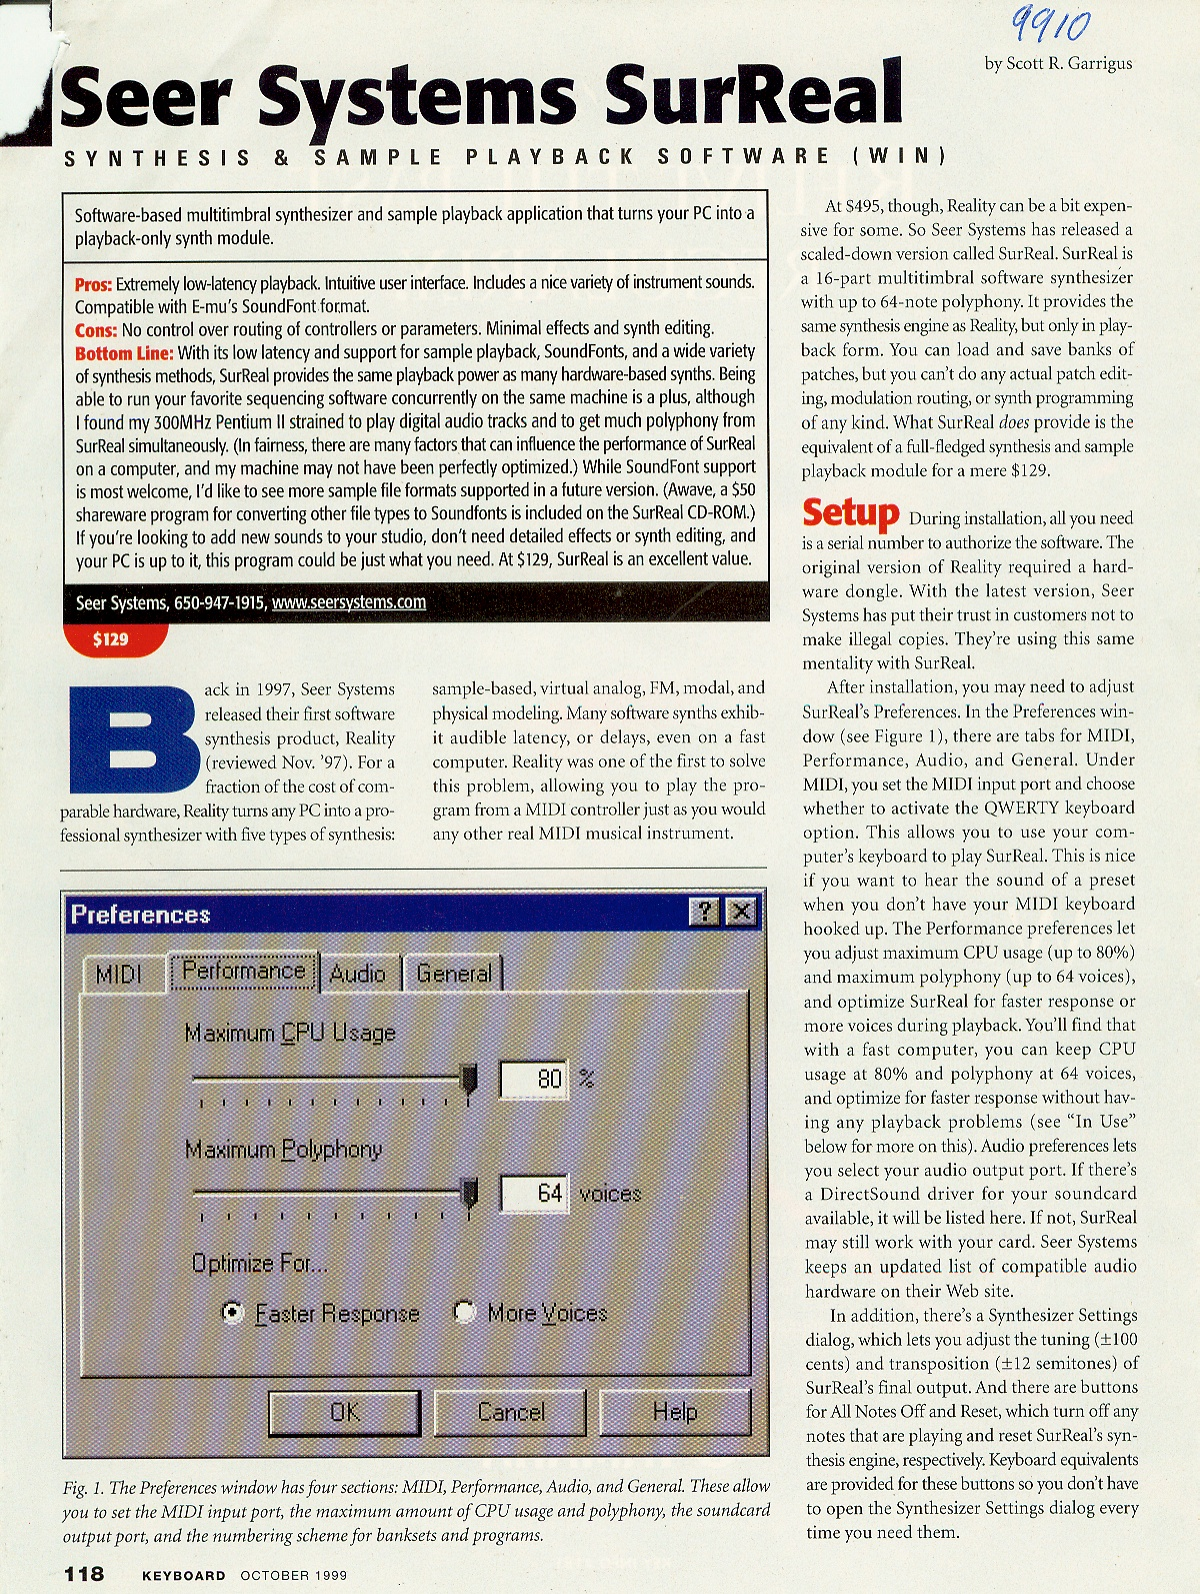 9910 SURREAL ARTICLE PG1 KEYBD